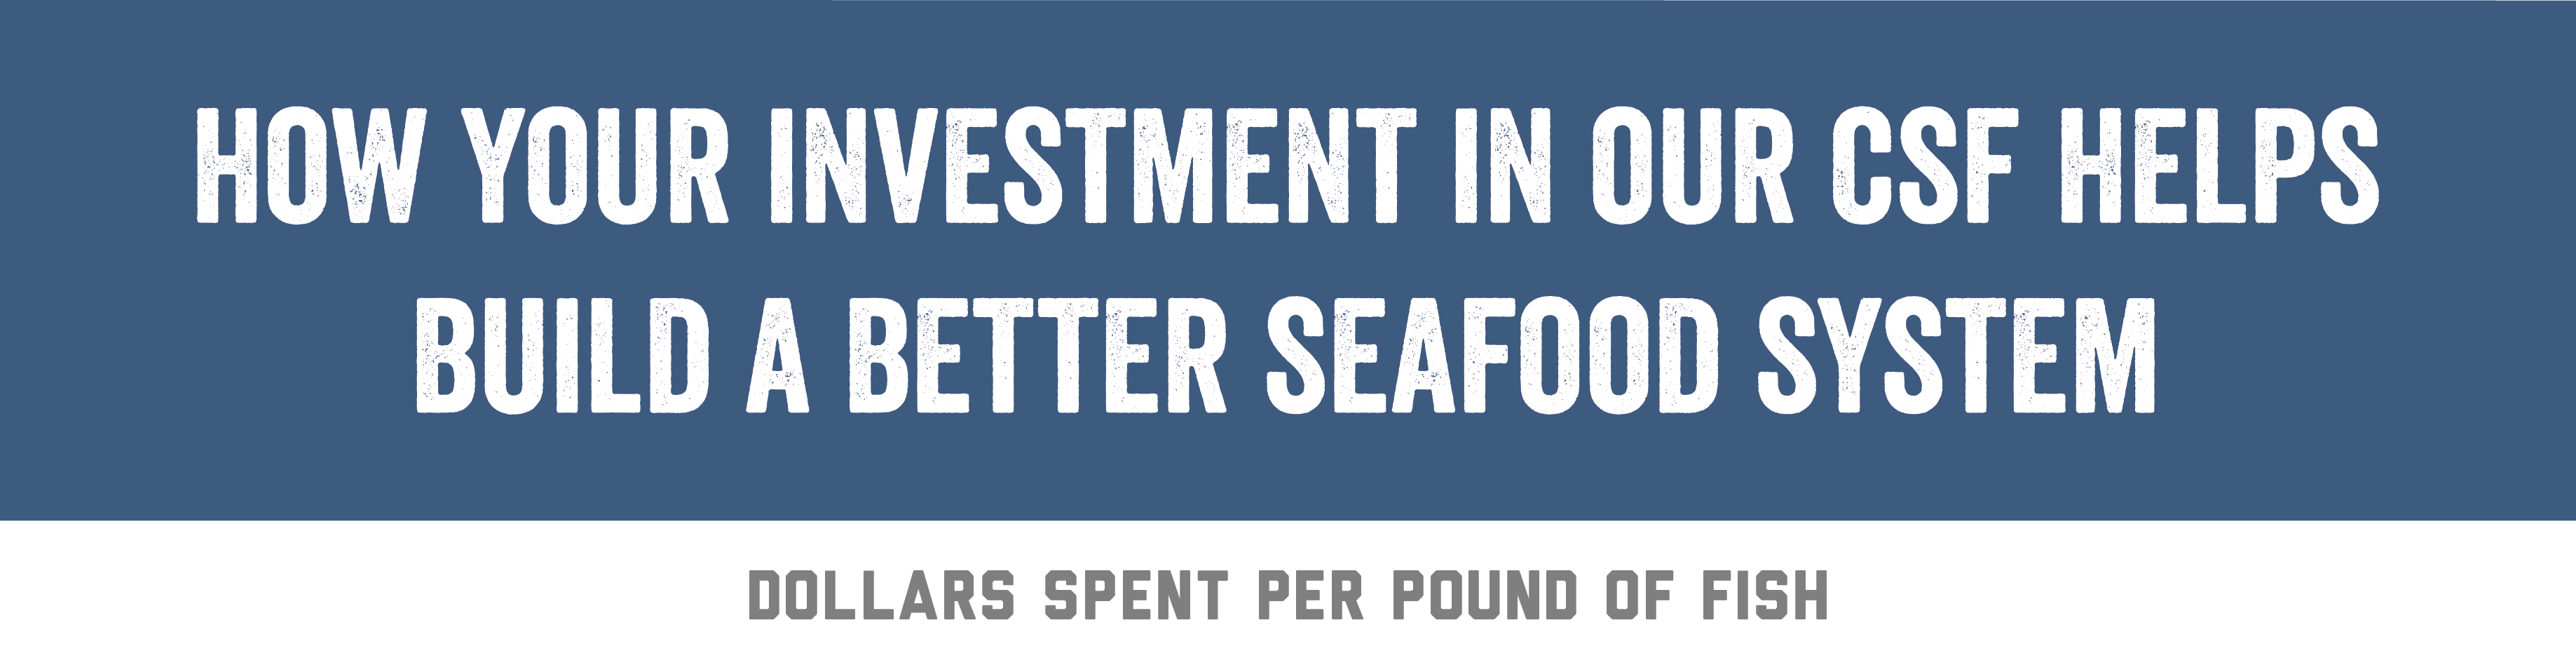 How Your Investment In Our CSF Helps Build A Better Seafood System | Dollars Spent Per Pound Of Fish